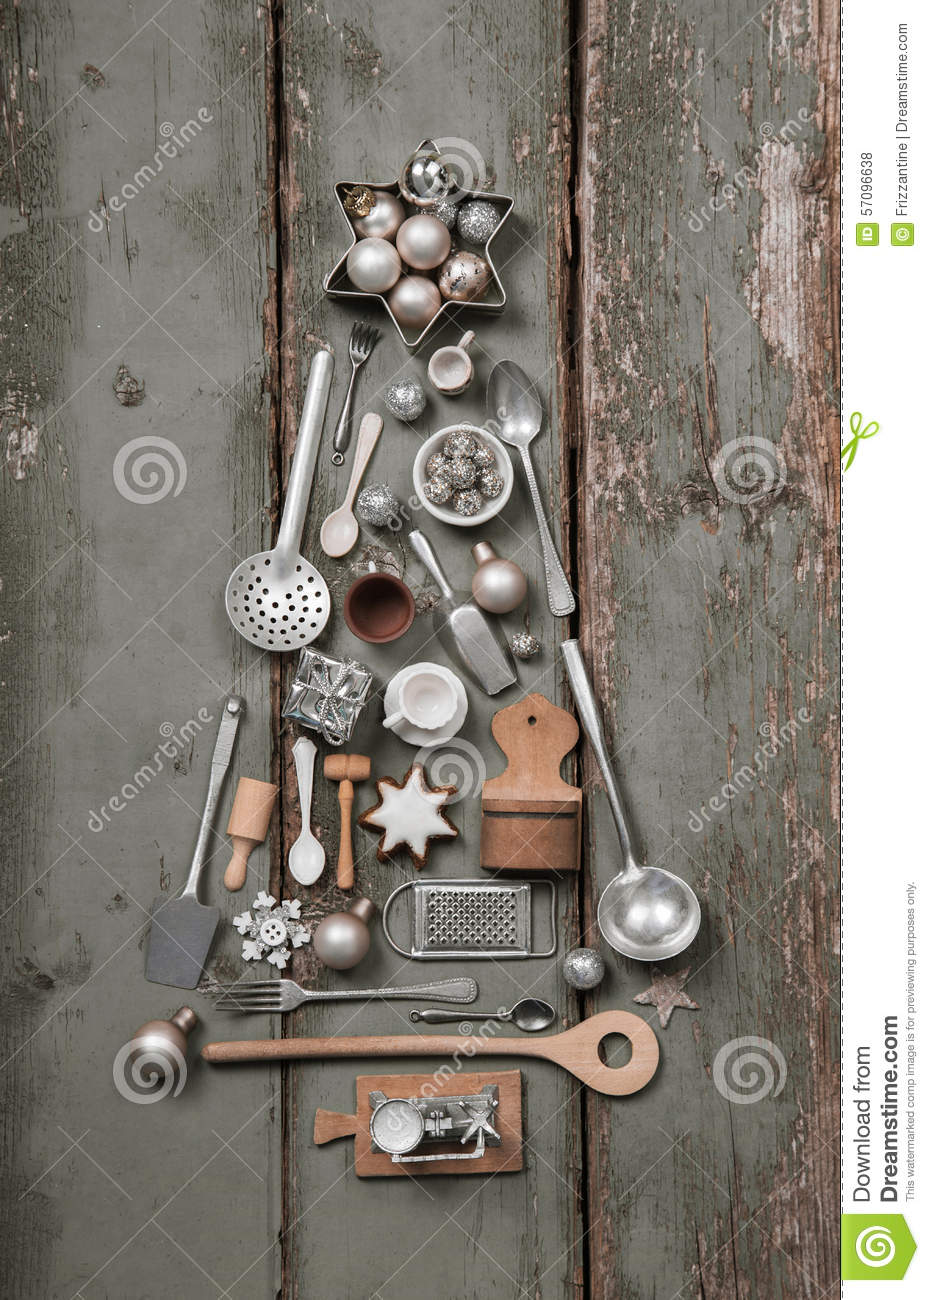 Vintage Decoration Of Ancient Kitchen Equipment With